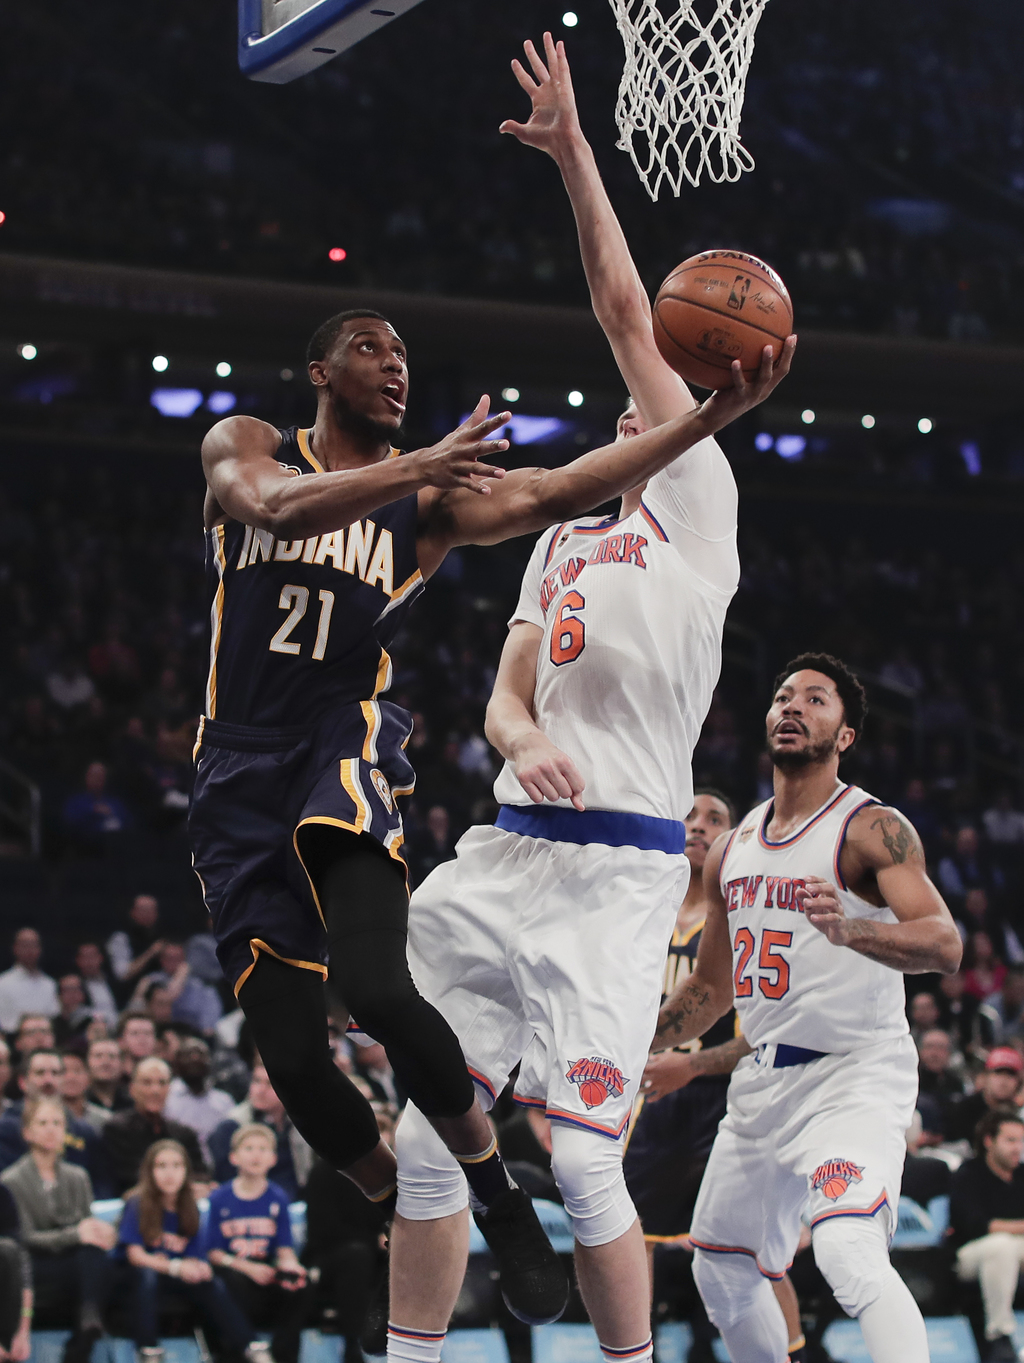 Indiana Pacers forward Thaddeus Young (21) shoots against New York Knicks forward Kristaps Porzingis (6) during the first quarter of an...